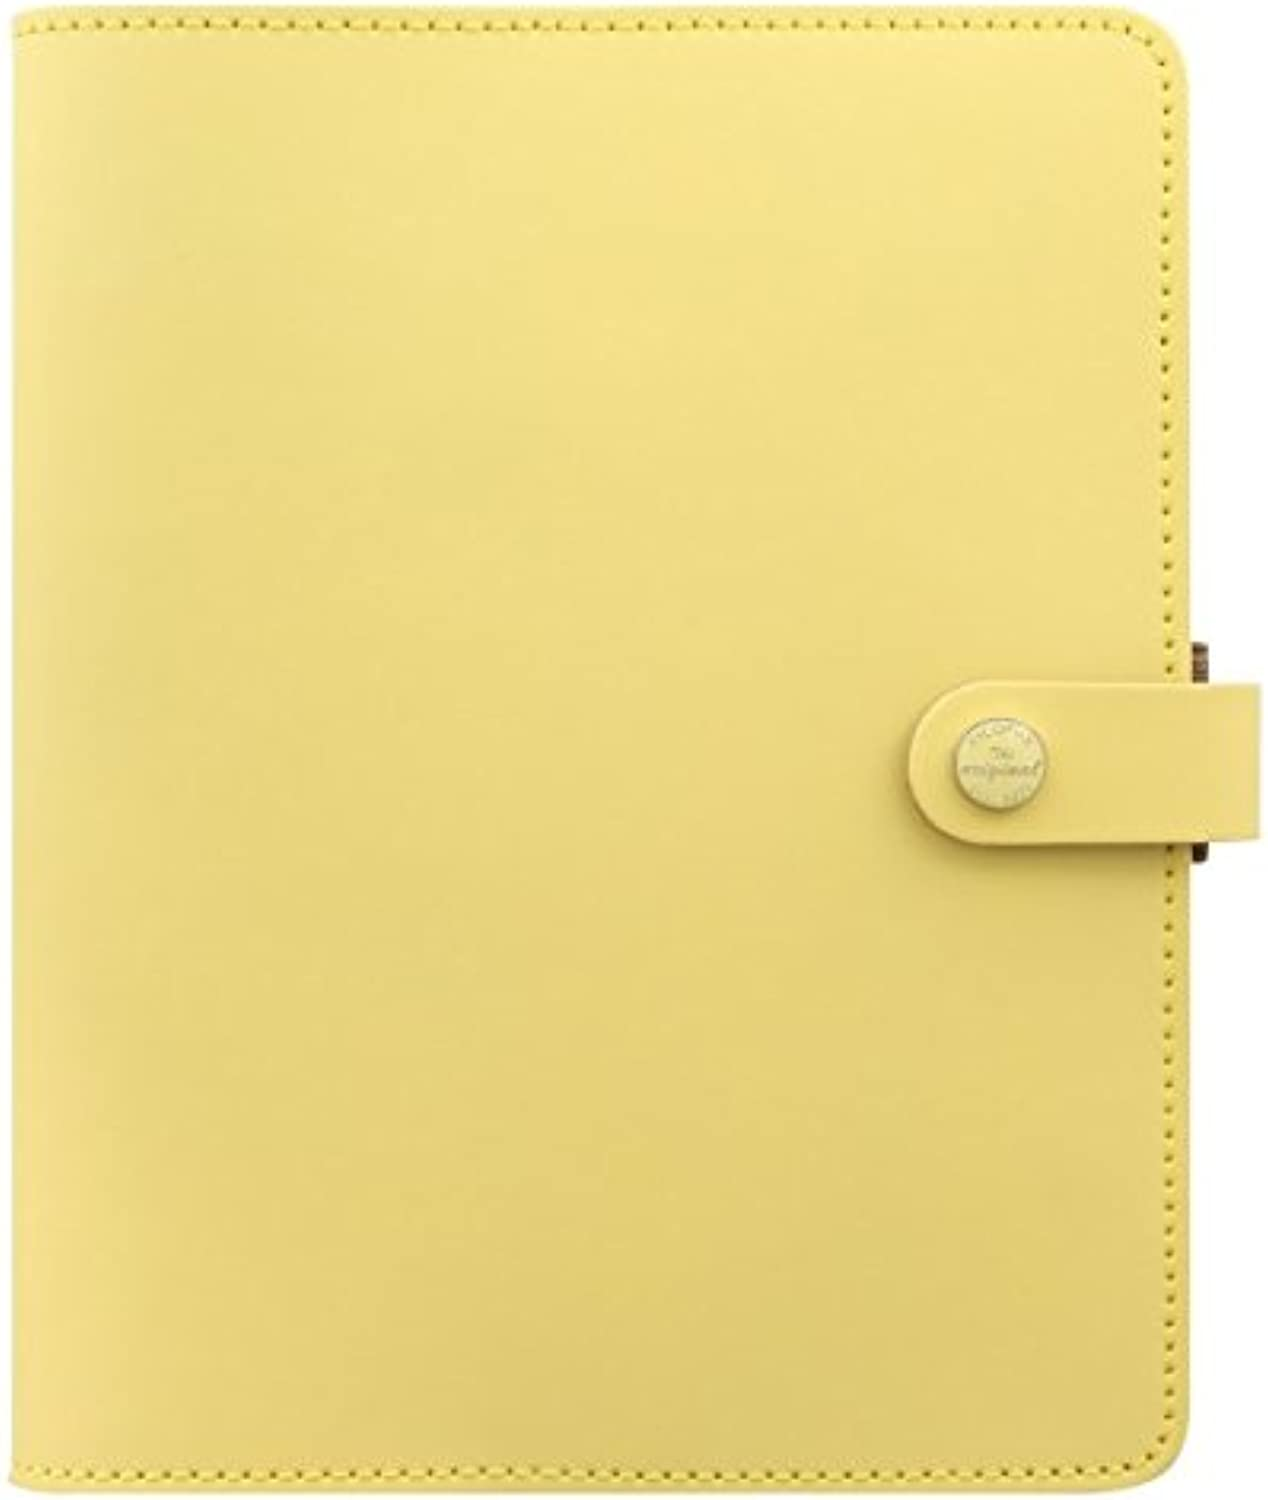 Filofax Terminplaner Organiser The Original A5 Any Year undatiert in lemon B07CTL8SG1 | Kunde zuerst